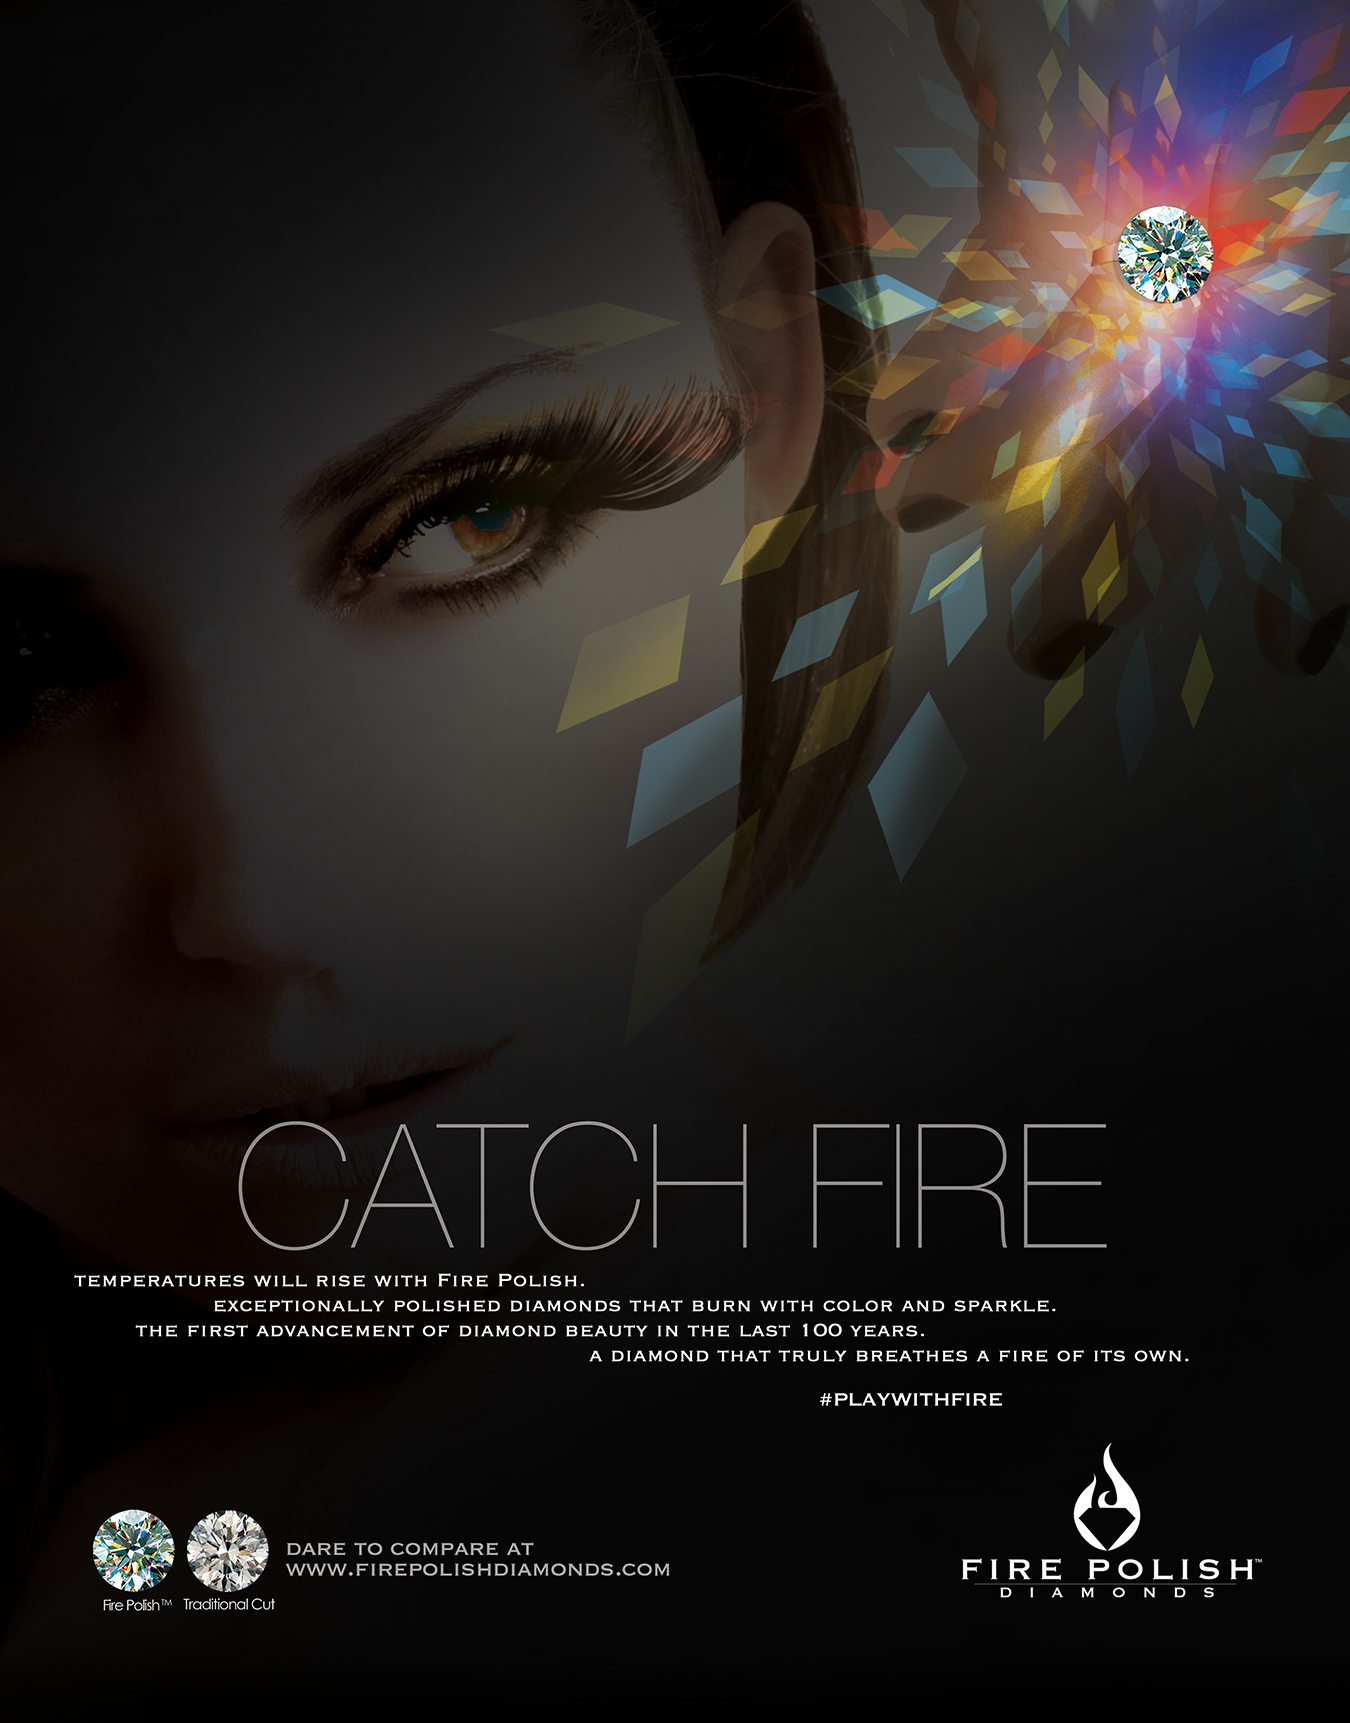 fire polish diamonds ad2